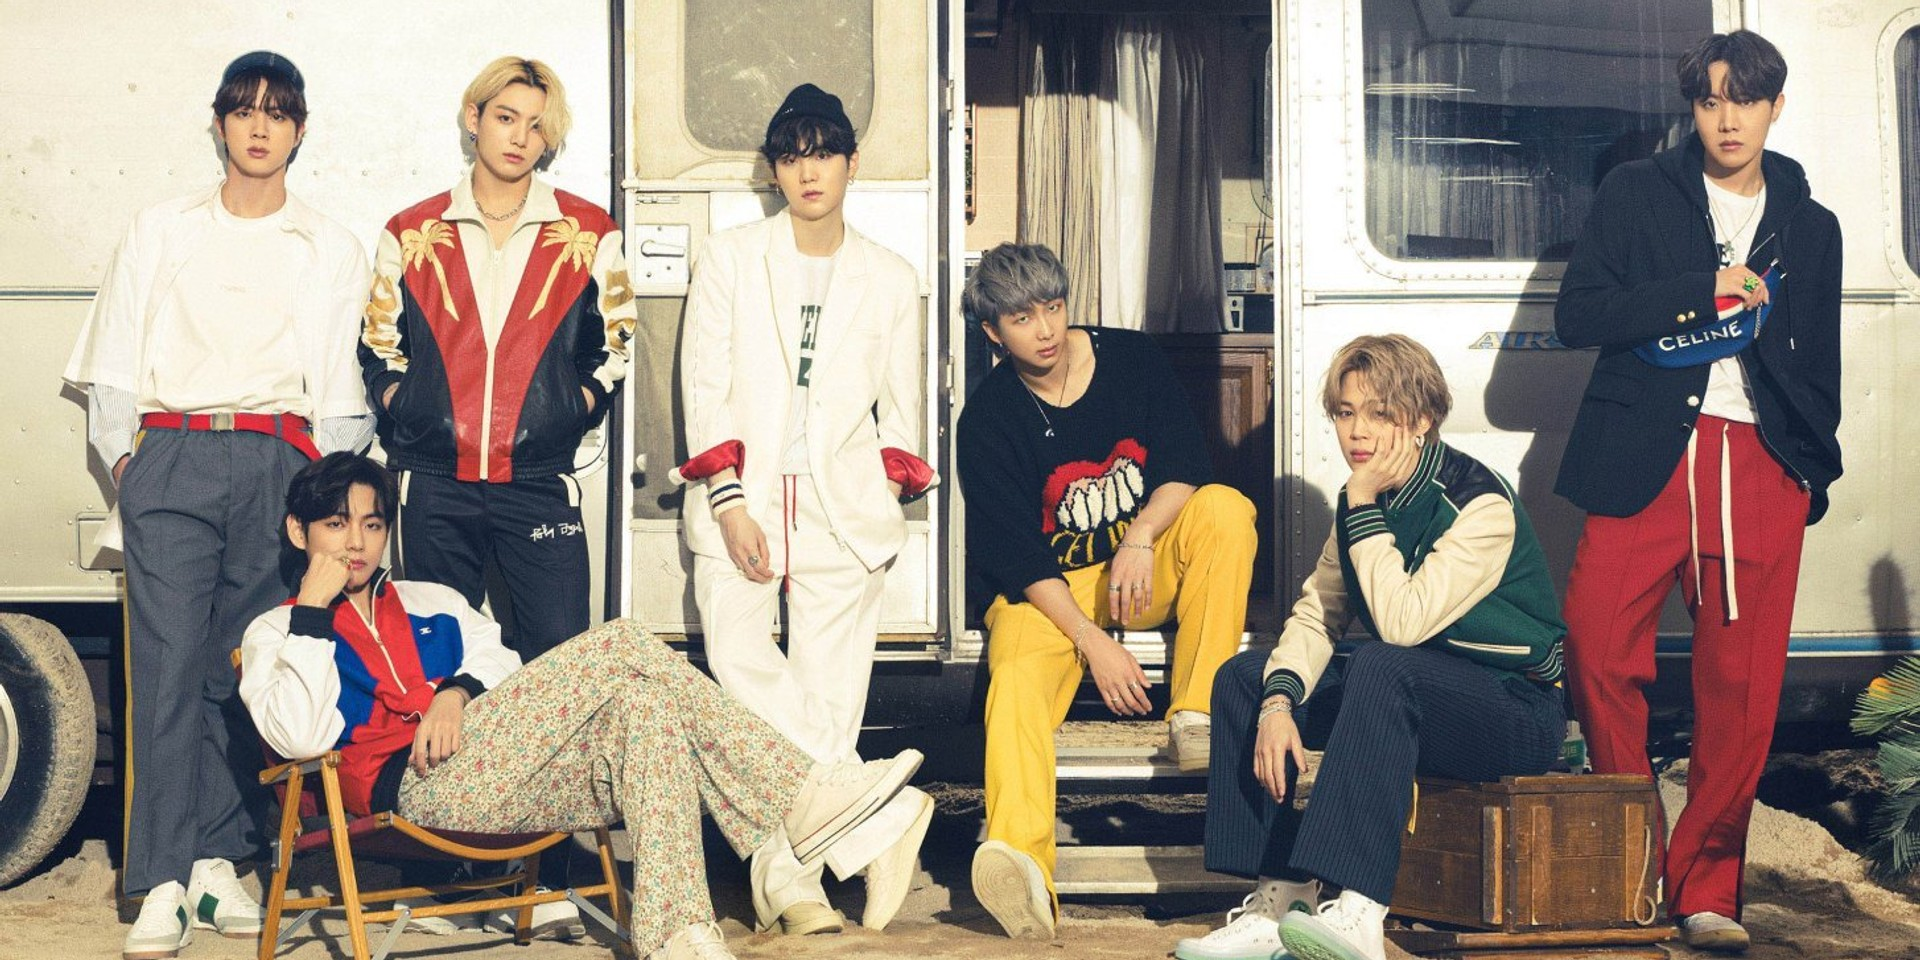 BTS release new Japanese compilation album 'BTS, THE BEST', 1.1 million copies sold on first day